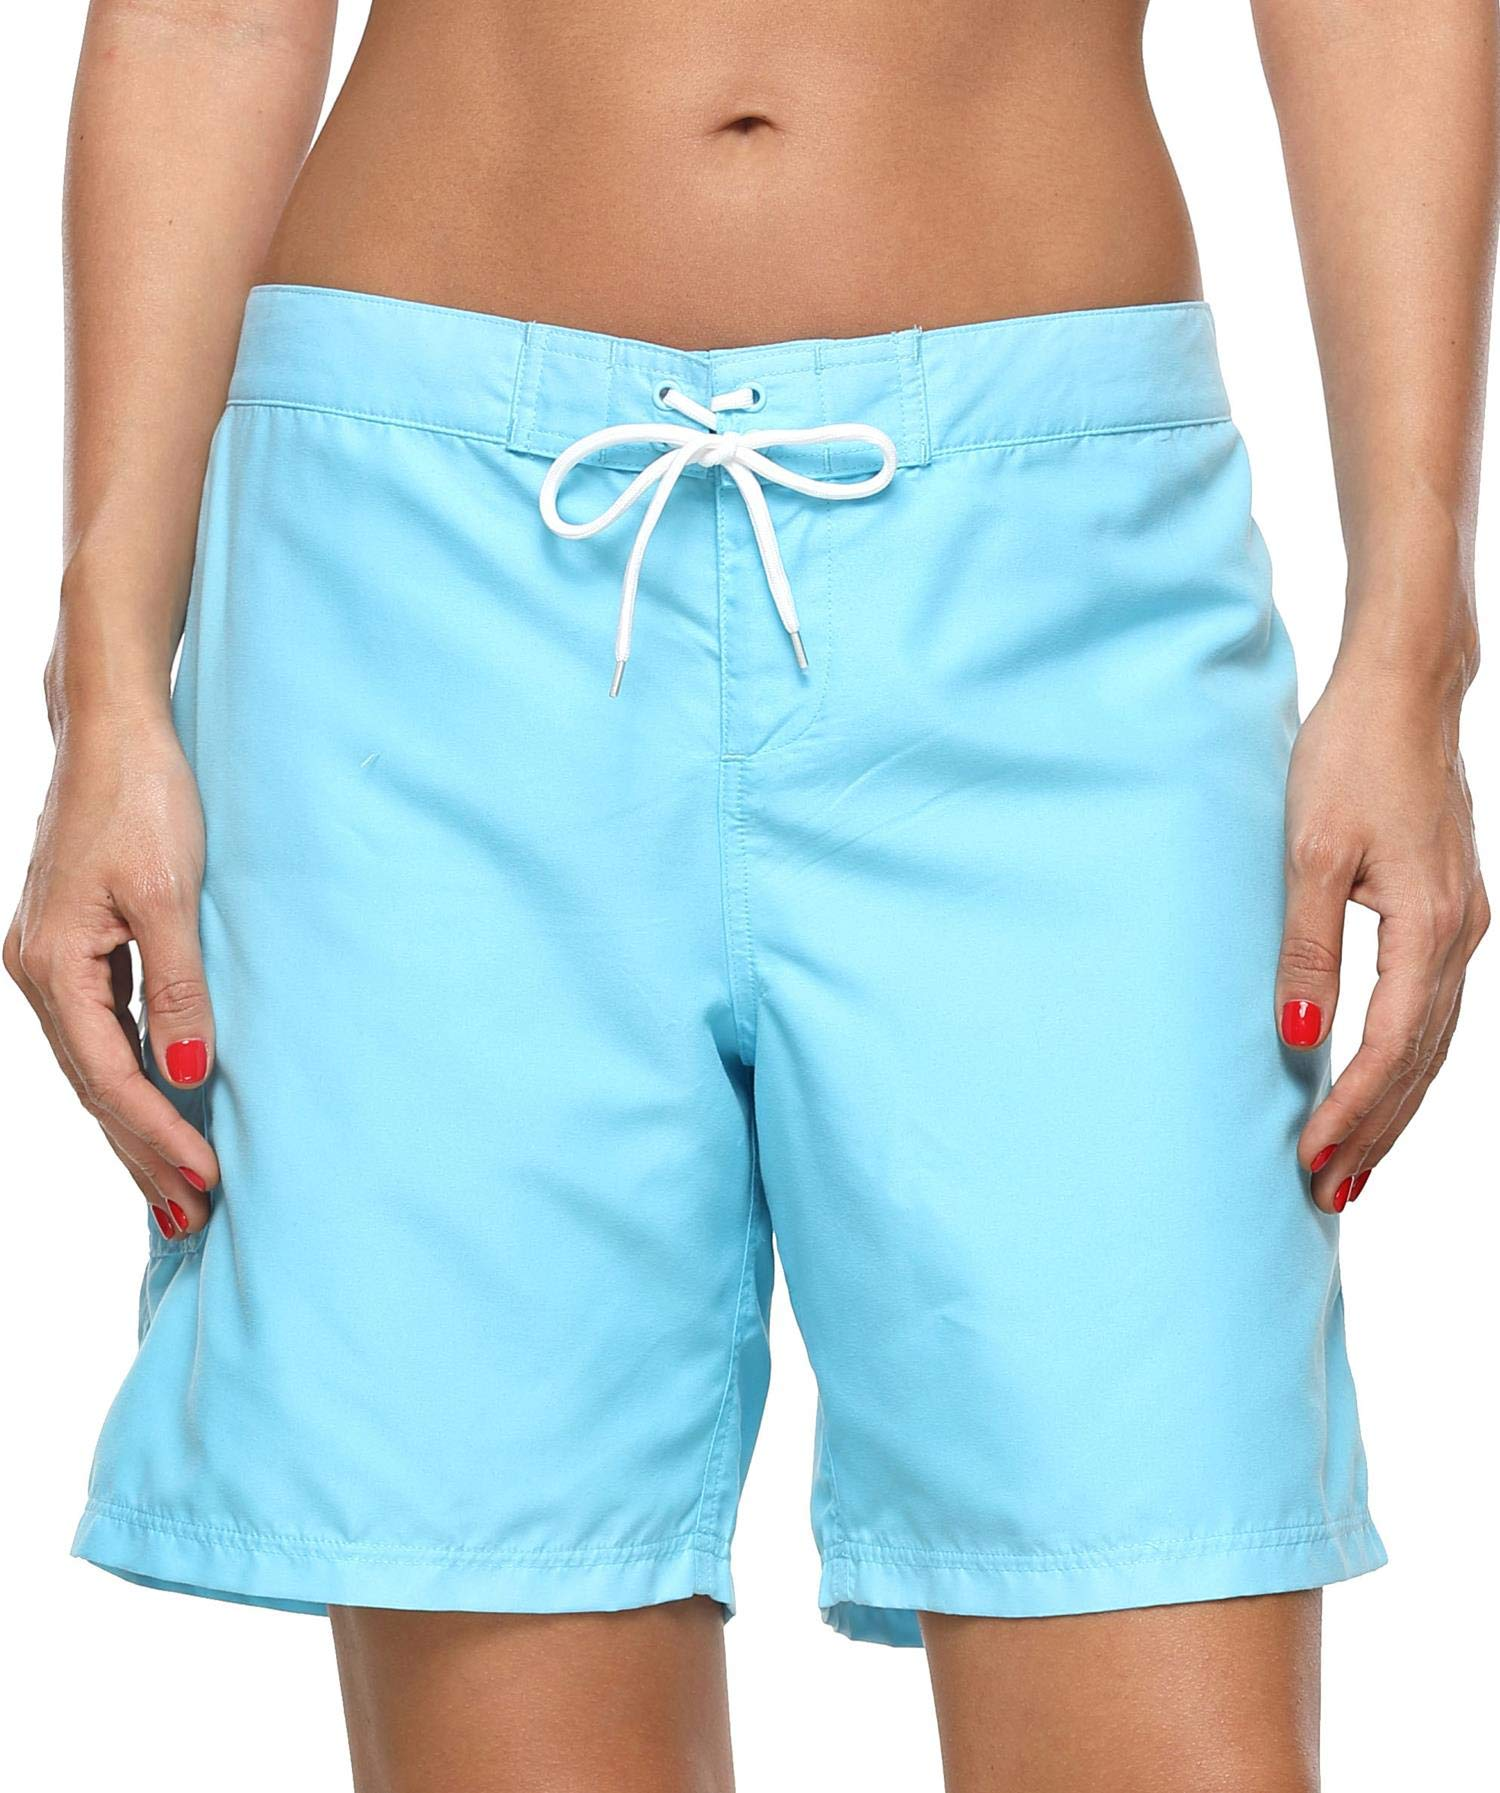 19a082aa30 Anwell Women's Beach Board Shorts High Waisted Swimwear Swim Trunk Blue XXXL